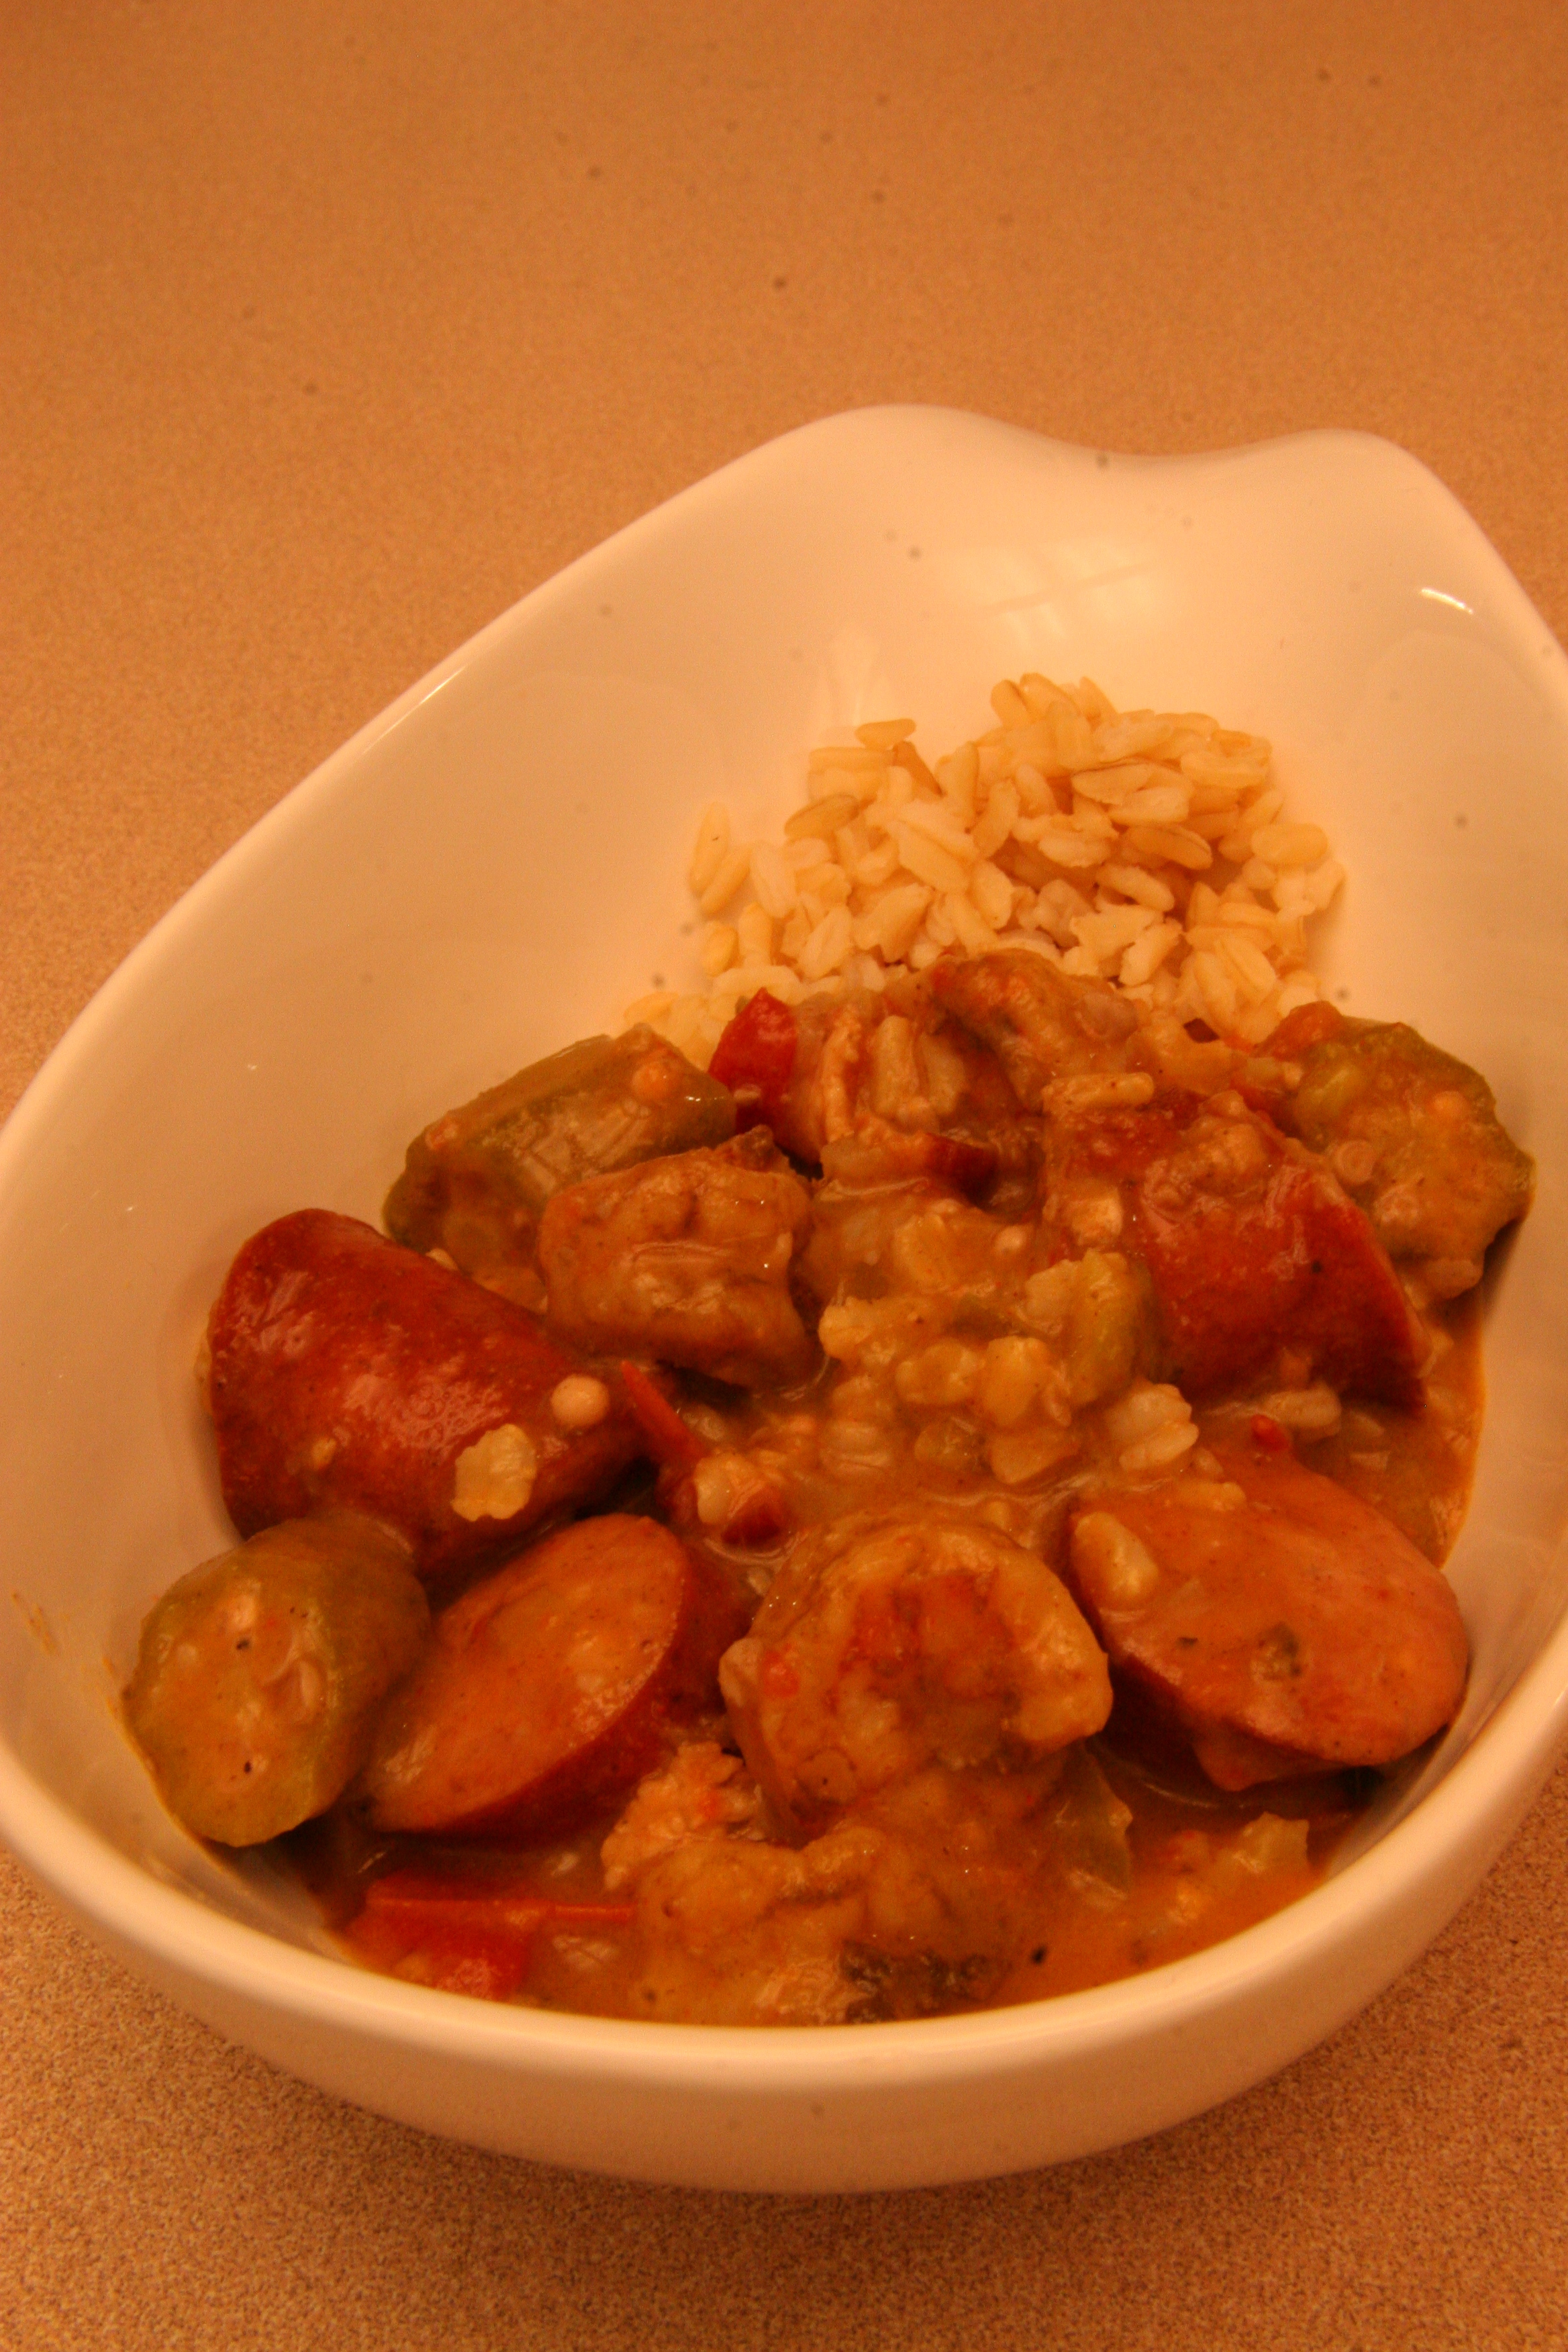 brings me right back to Mama's kitchen. Shrimp and sausage gumbo ...